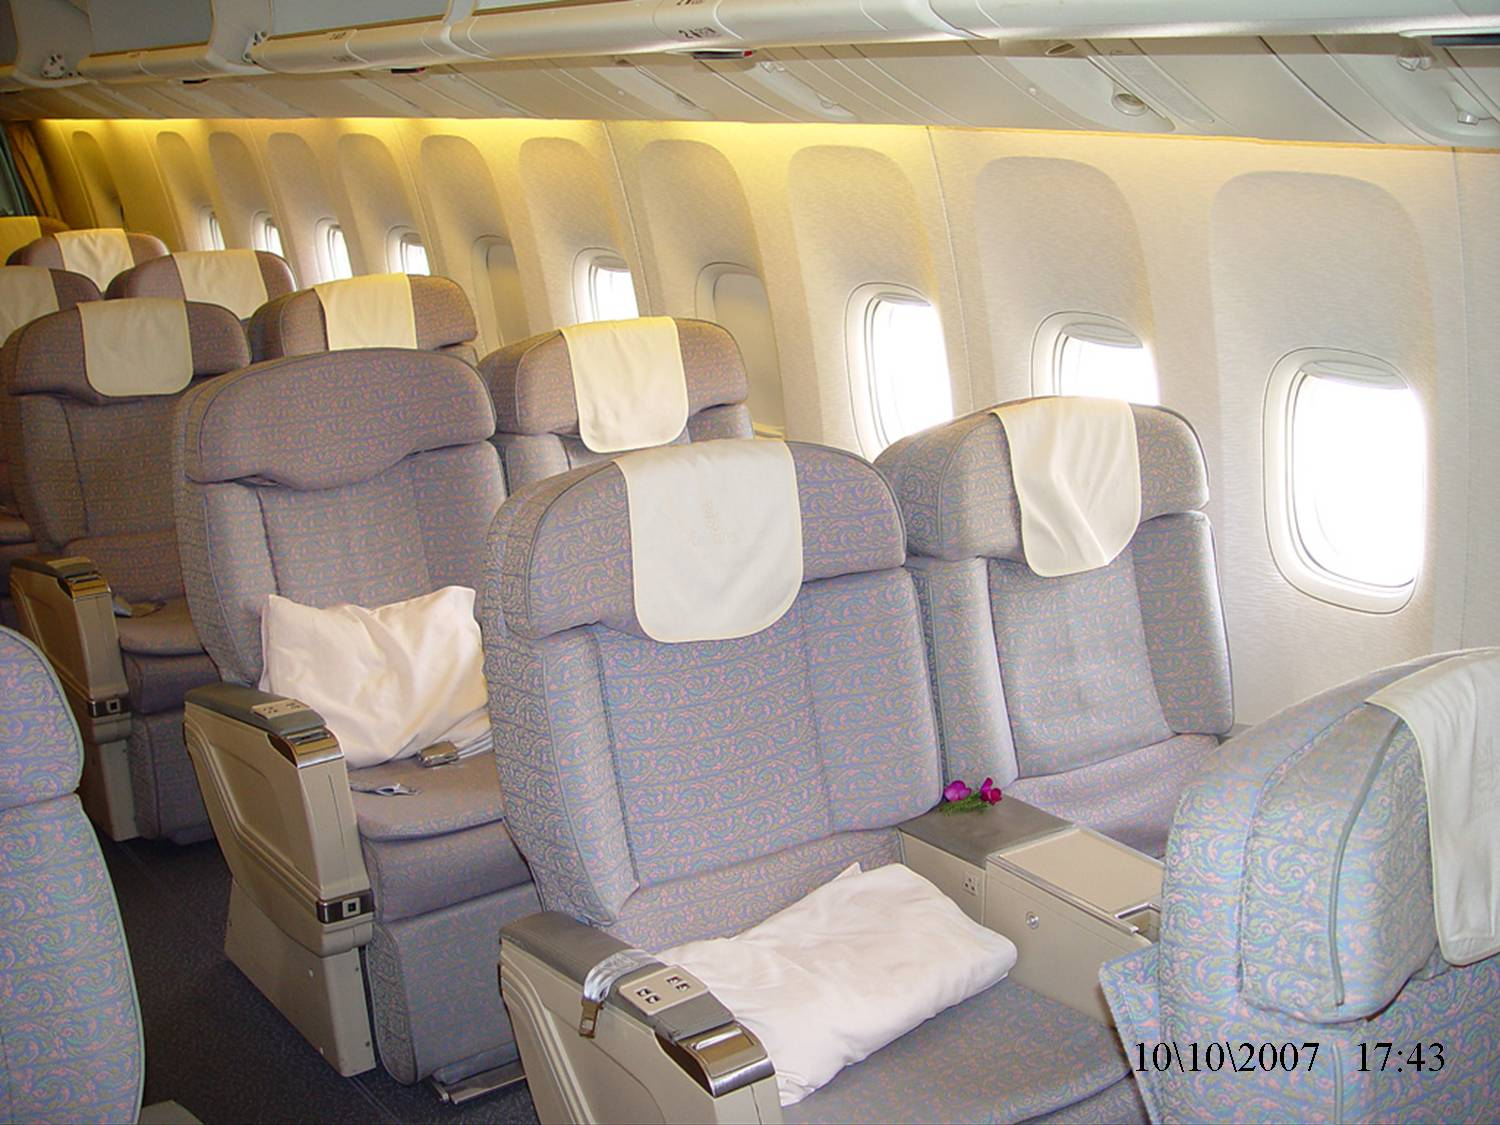 File:Emirates 777 Business Class.jpg - Wikimedia Commons